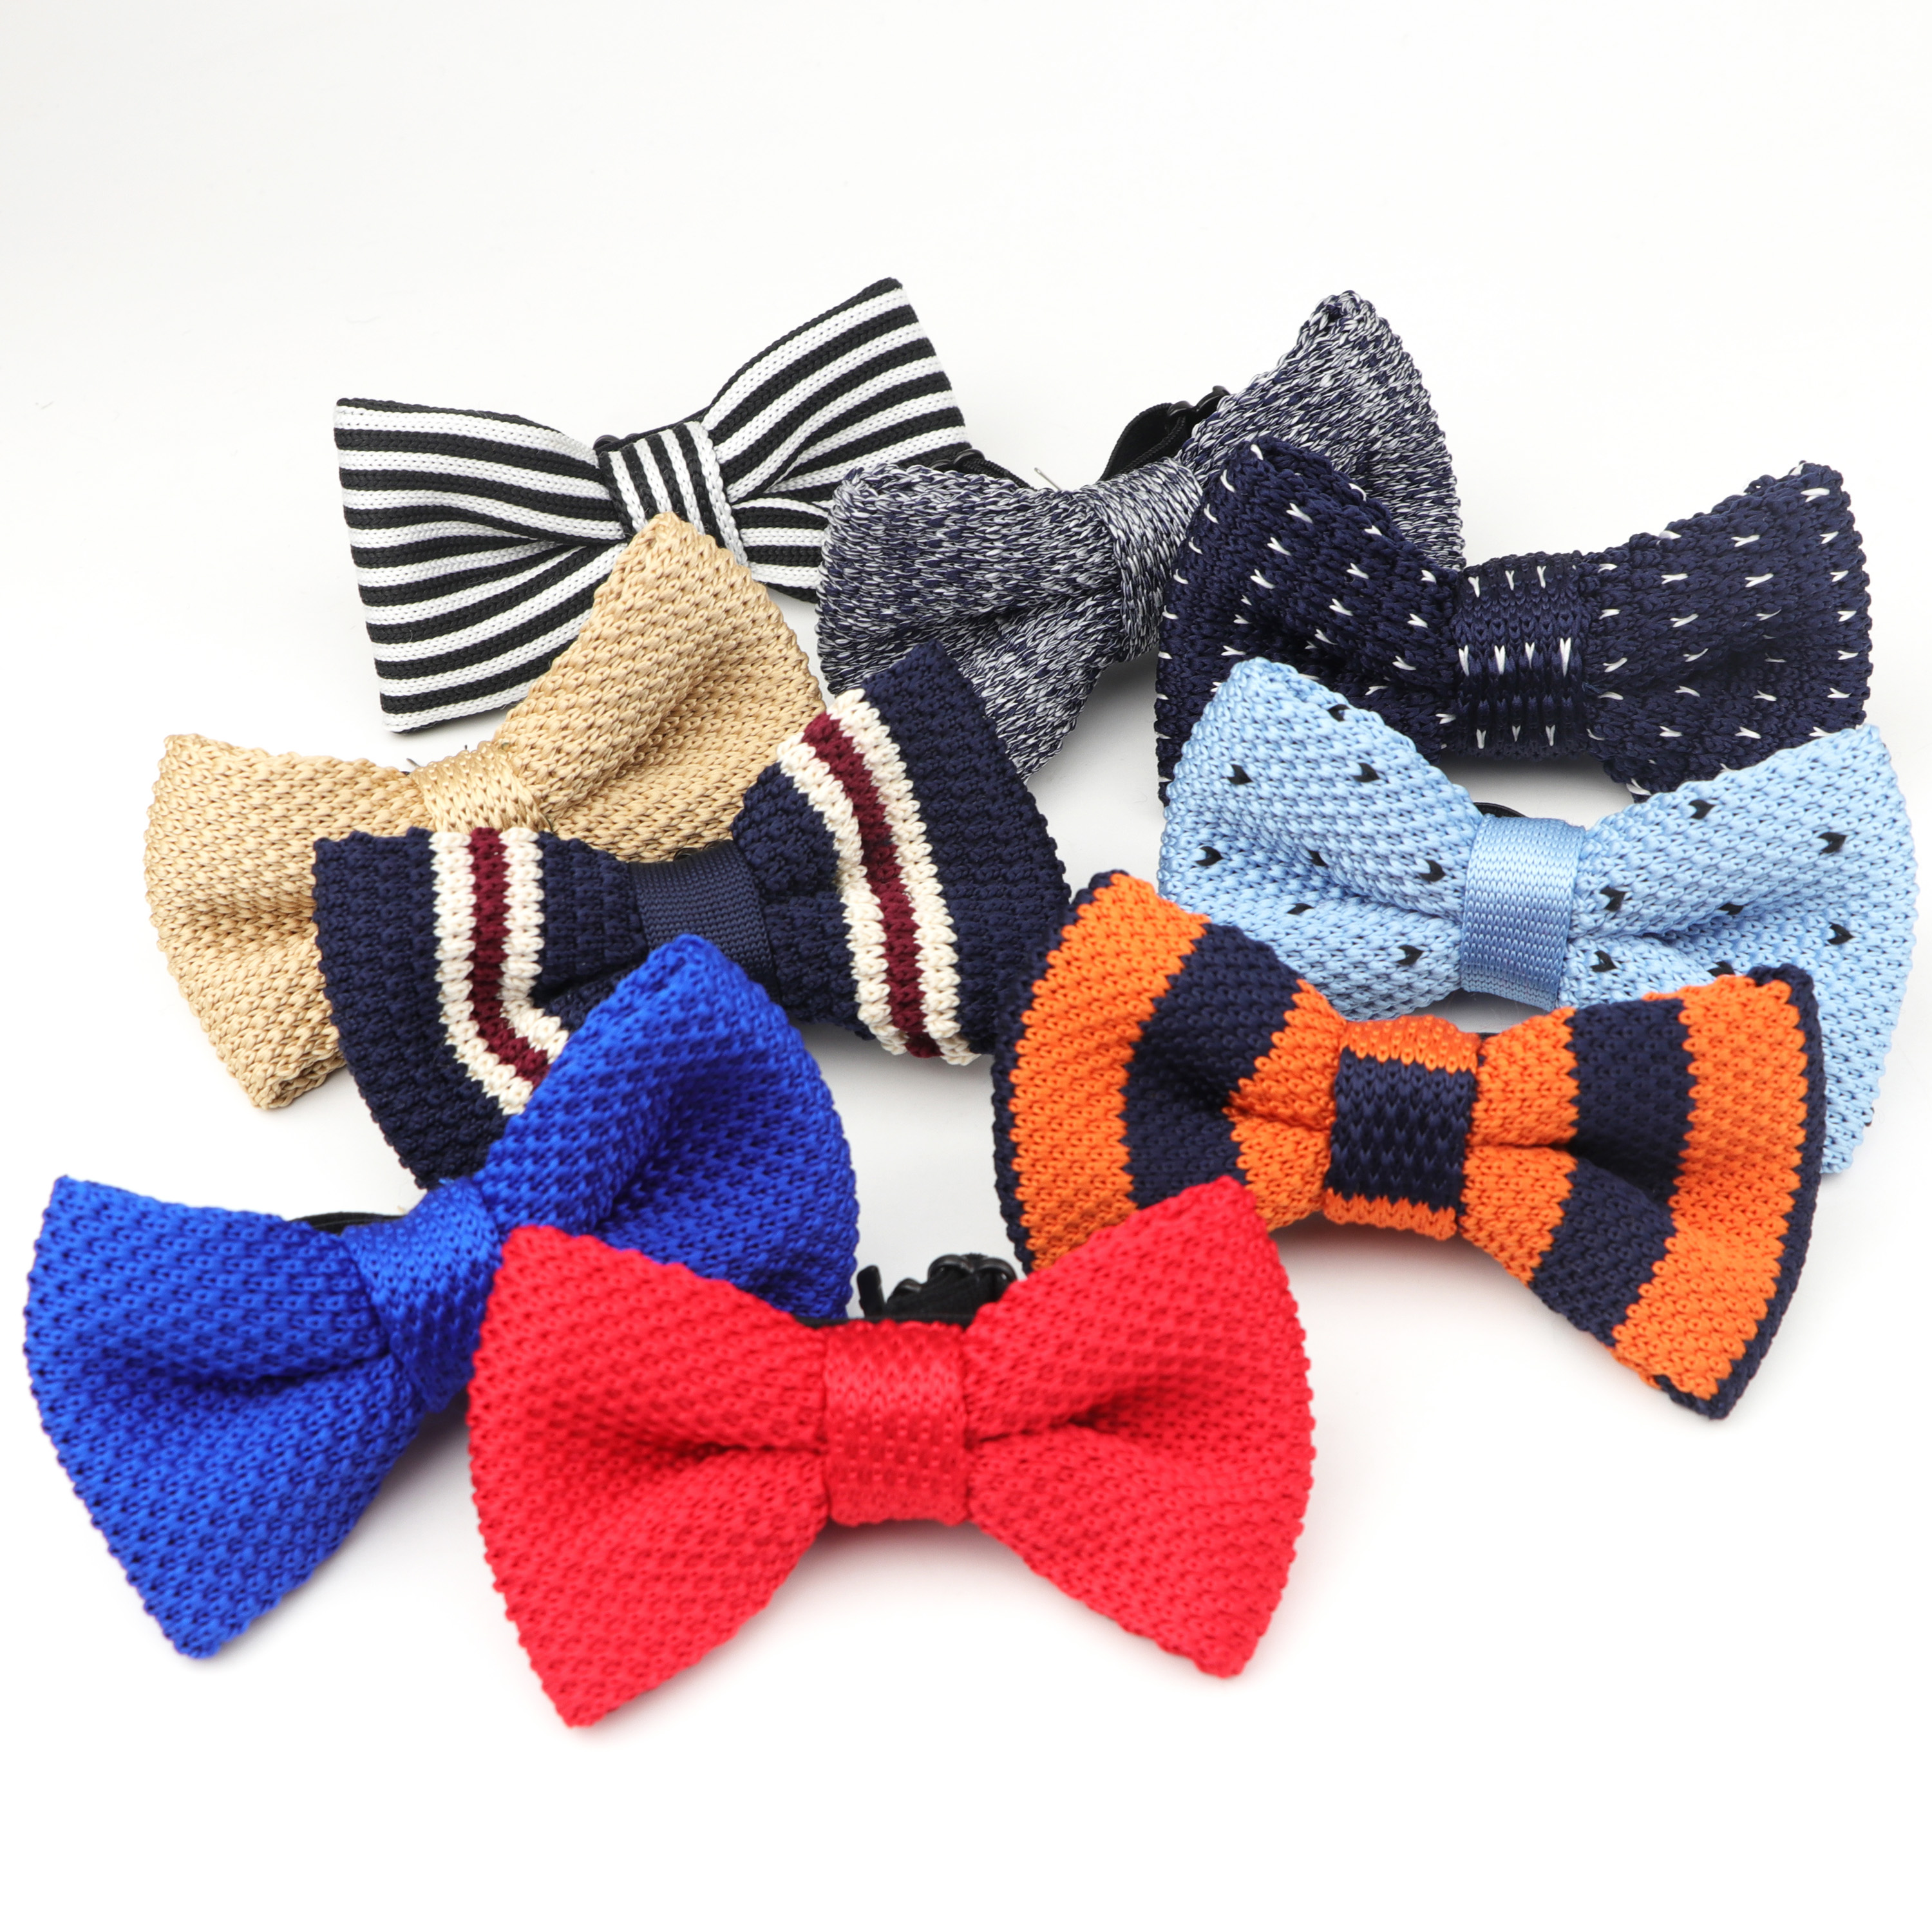 Kid Knit Bowtie Adjustable Elastic Butterfly One Deck Neckwear Bowties Designer Children Knitting Dress Knitted Bow Tie